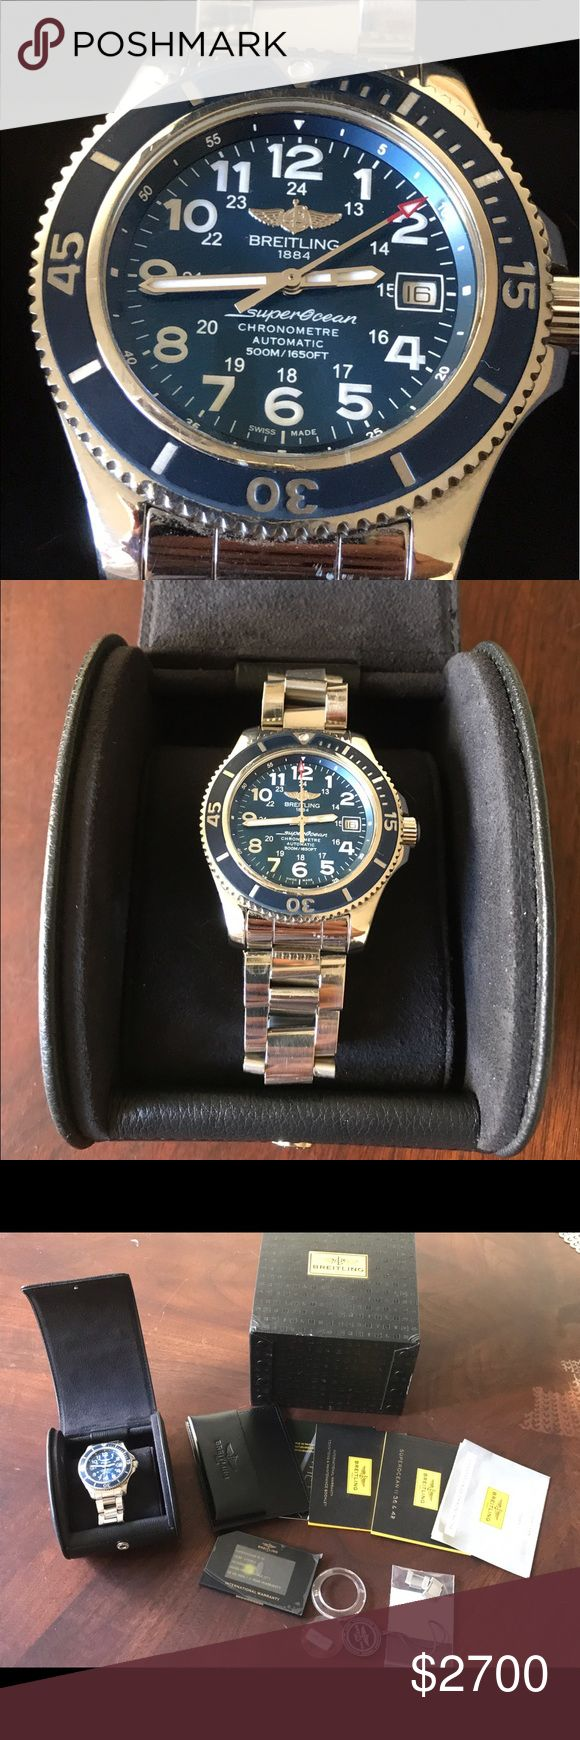 Authentic Breitling Superocean II 42 ✅check my shop discount for current offers bundle. ✅please don't make comments about my pricing, USE THE OFFER BUTTON(I will not respond to offers in the comments)     ✅PLEASE STUDY PICTURES BEFORE BUYING               🚫no trades🚫no holding🚫no lowball offers Poshmark  keeps 20%‼️                                                                    💓have a great day ☀️🌈💓Kelly 💓 Breitling Accessories Watches